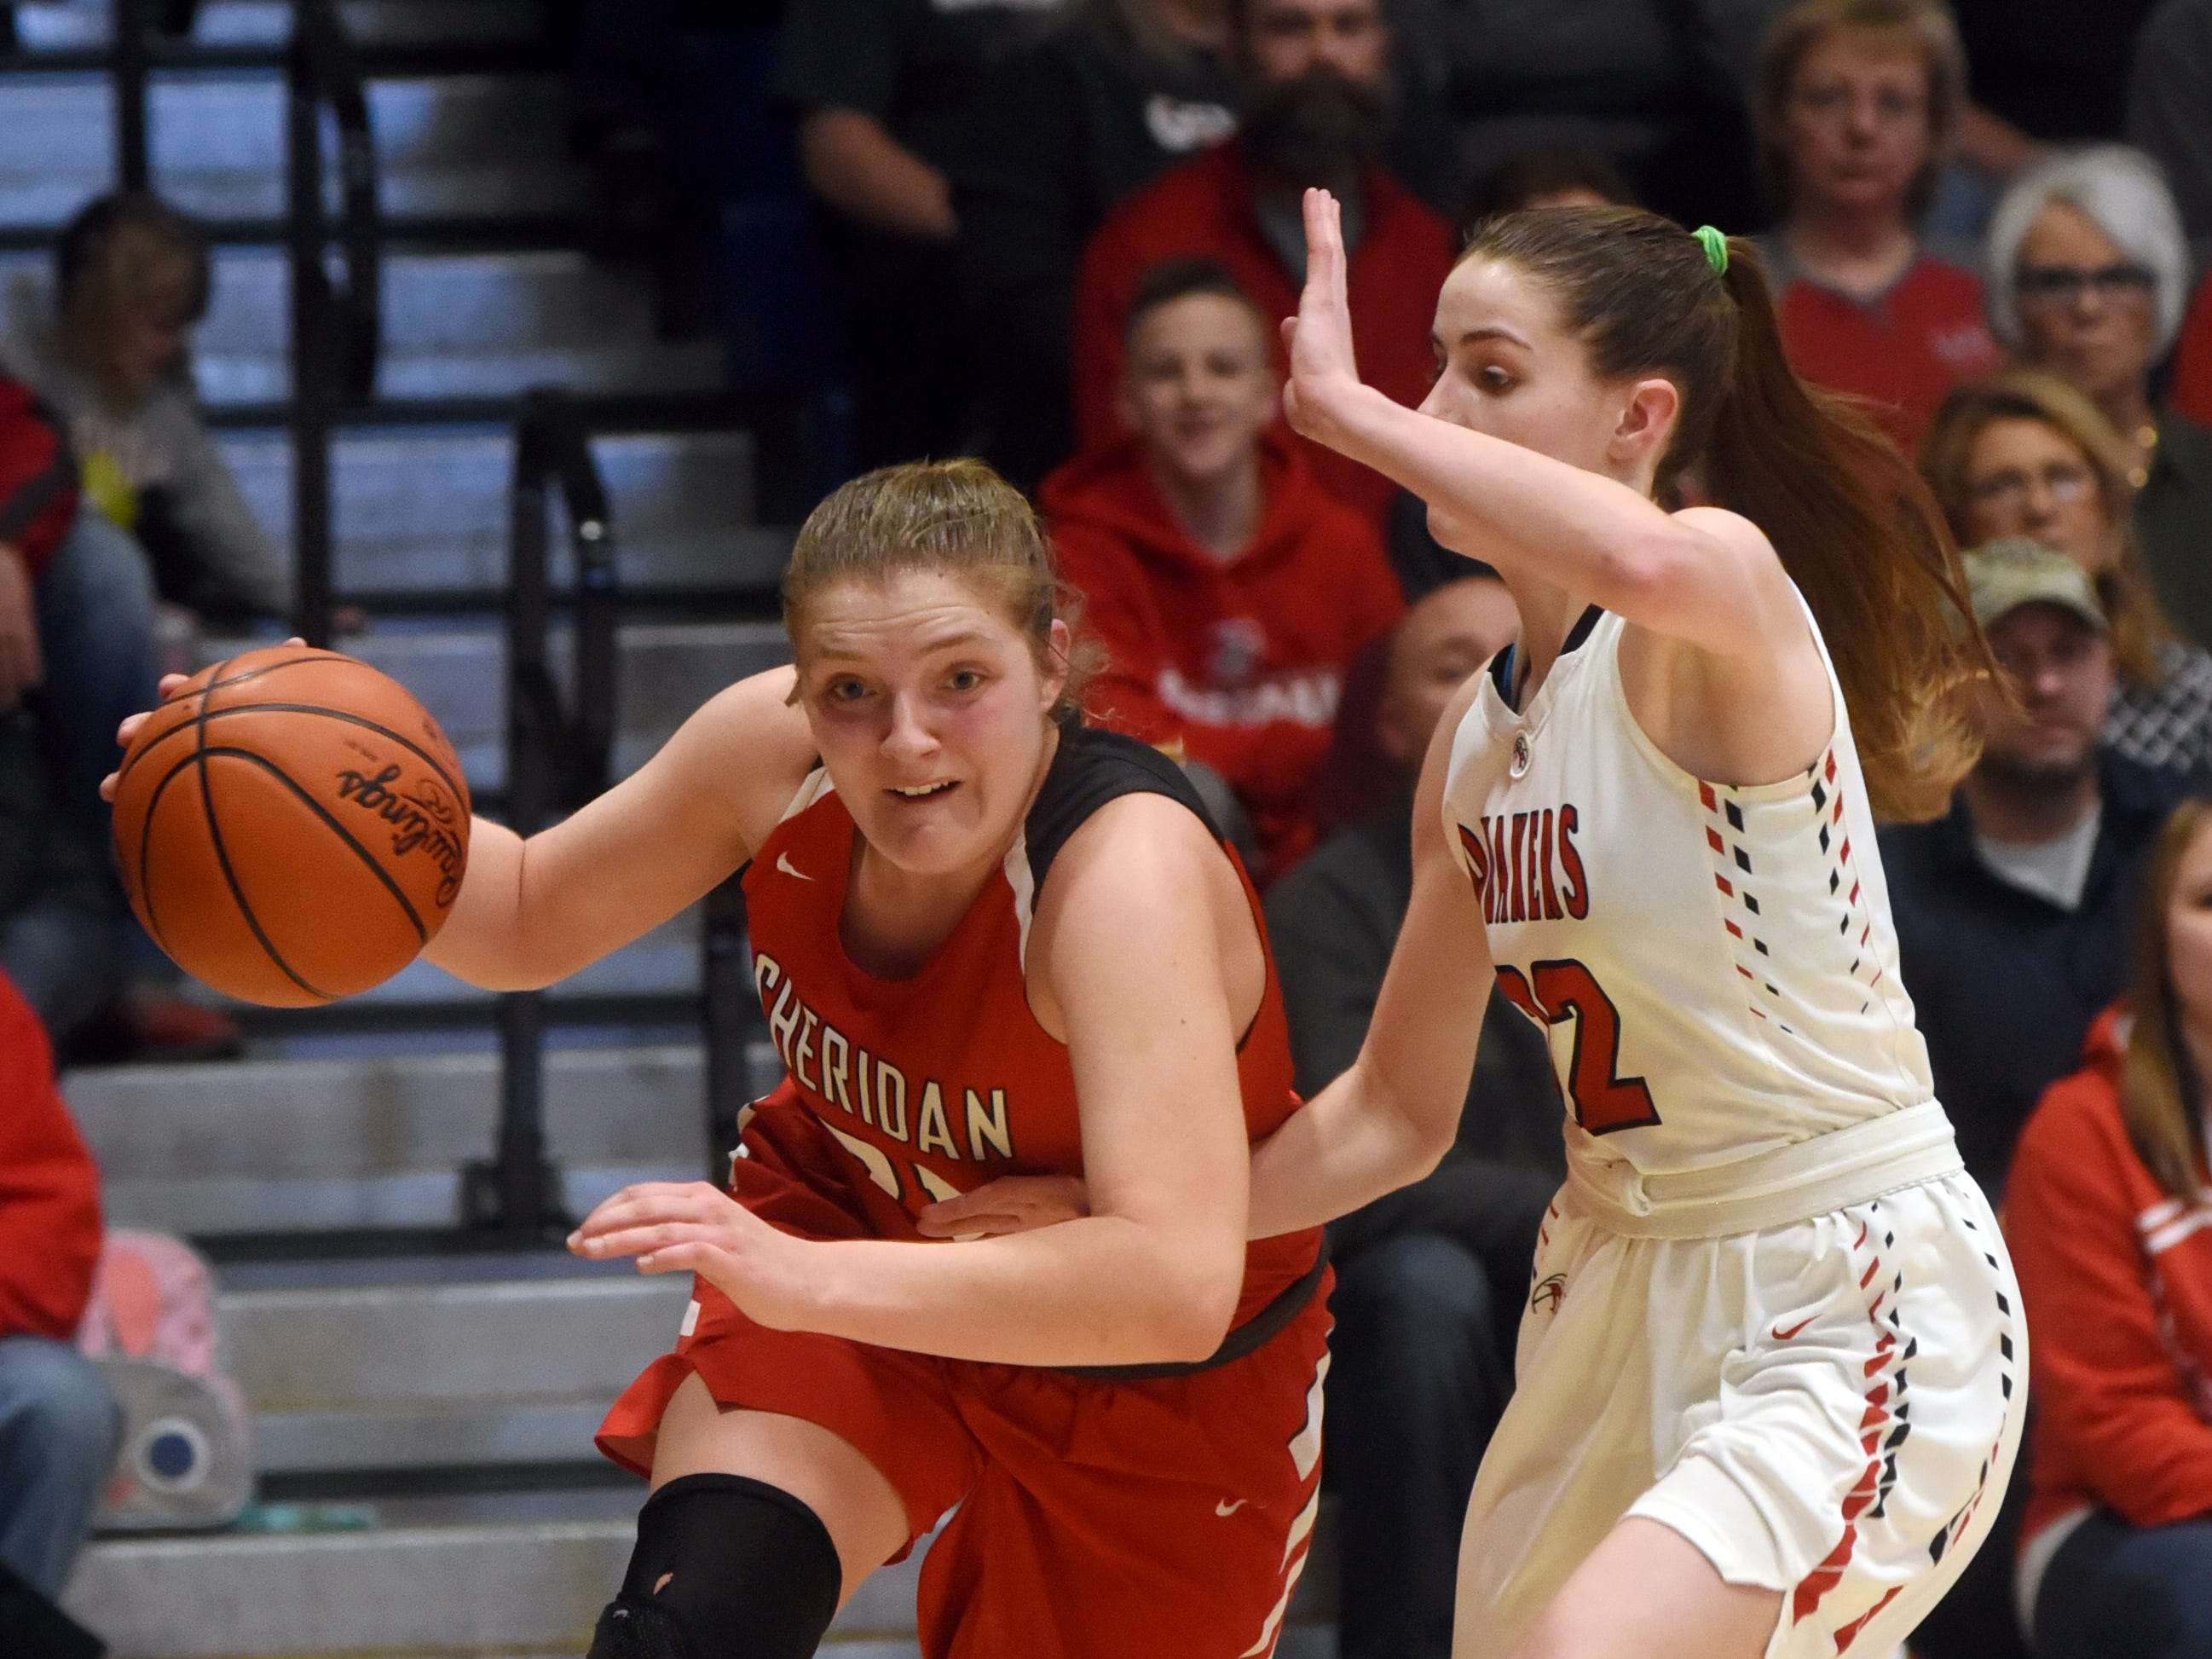 Sheridan's Kendyl Mick drives the baseline against New Philadelphia on Friday night in a Division II regional final at Winland Memorial Gymnasium. The Generals reached their first state tournament since 2004 with a 48-46 win.